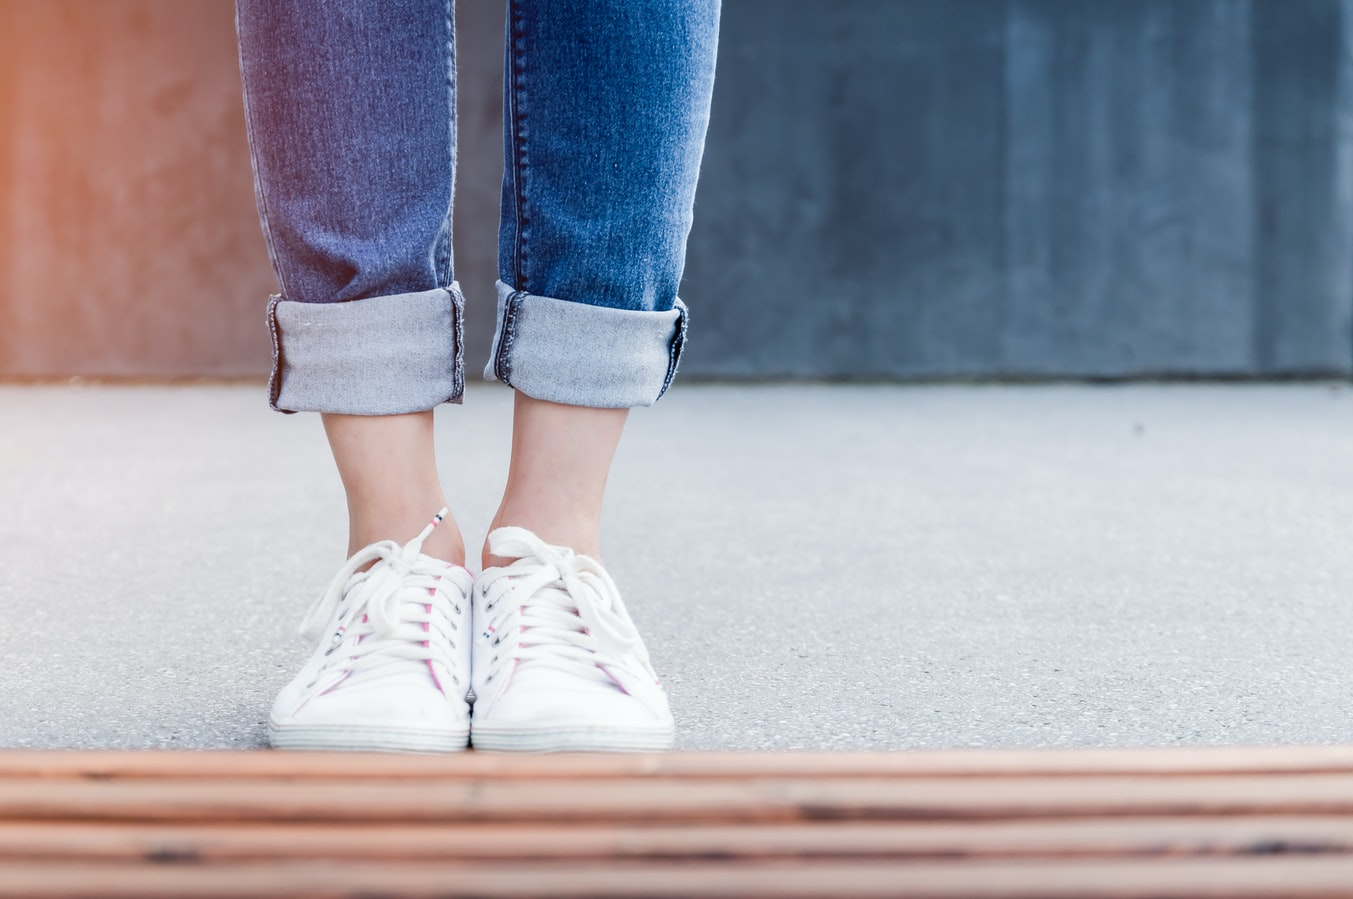 Womans lower legs wearing white shoes Photo by JESHOOTS.COM on Unsplash